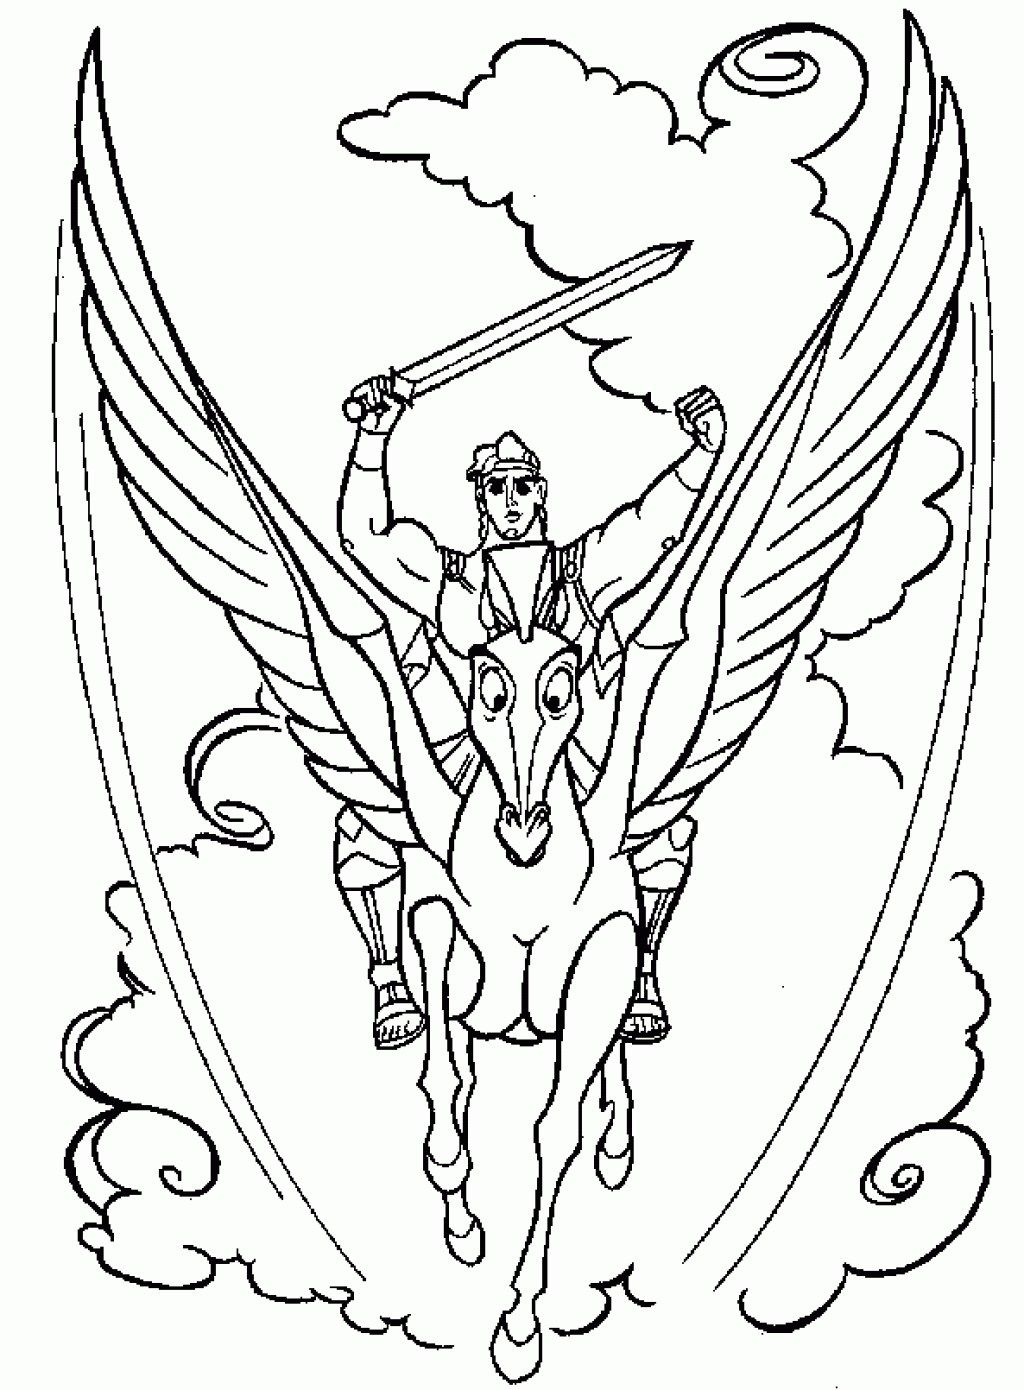 Pretty Photo Of Hercules Coloring Pages Davemelillo Com Free Coloring Pictures Cartoon Coloring Pages Monster Coloring Pages